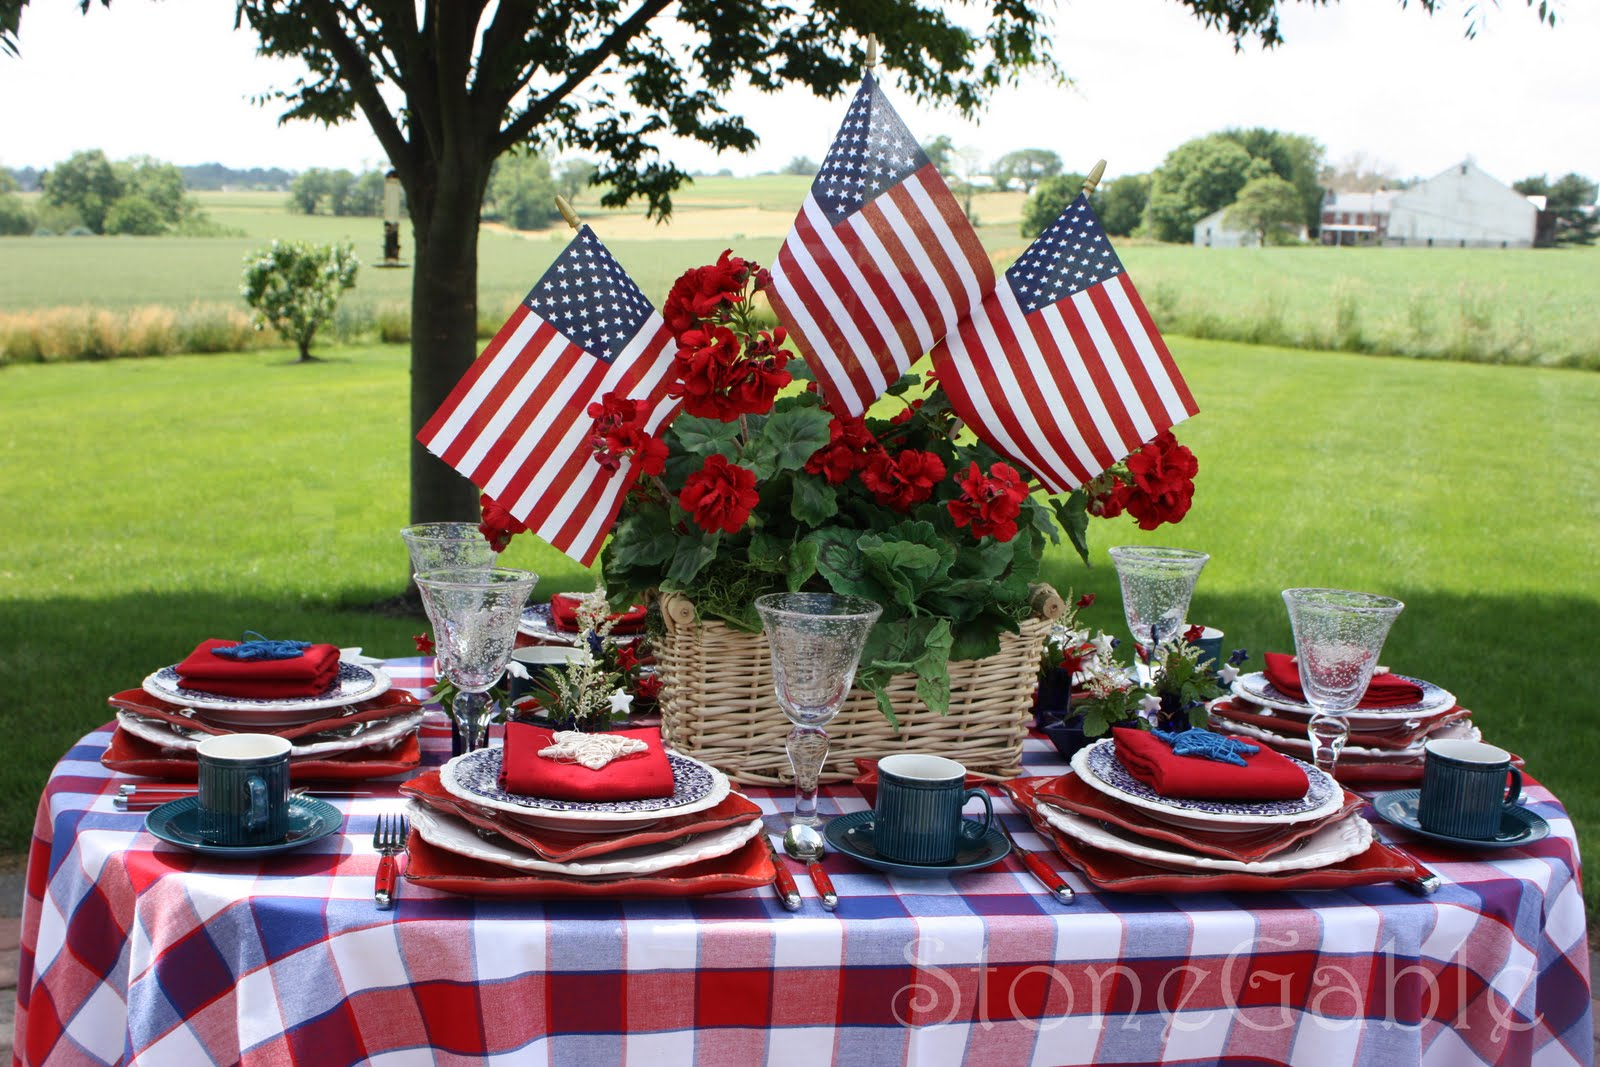 The table is set on our small patio overlooking for Decoration day